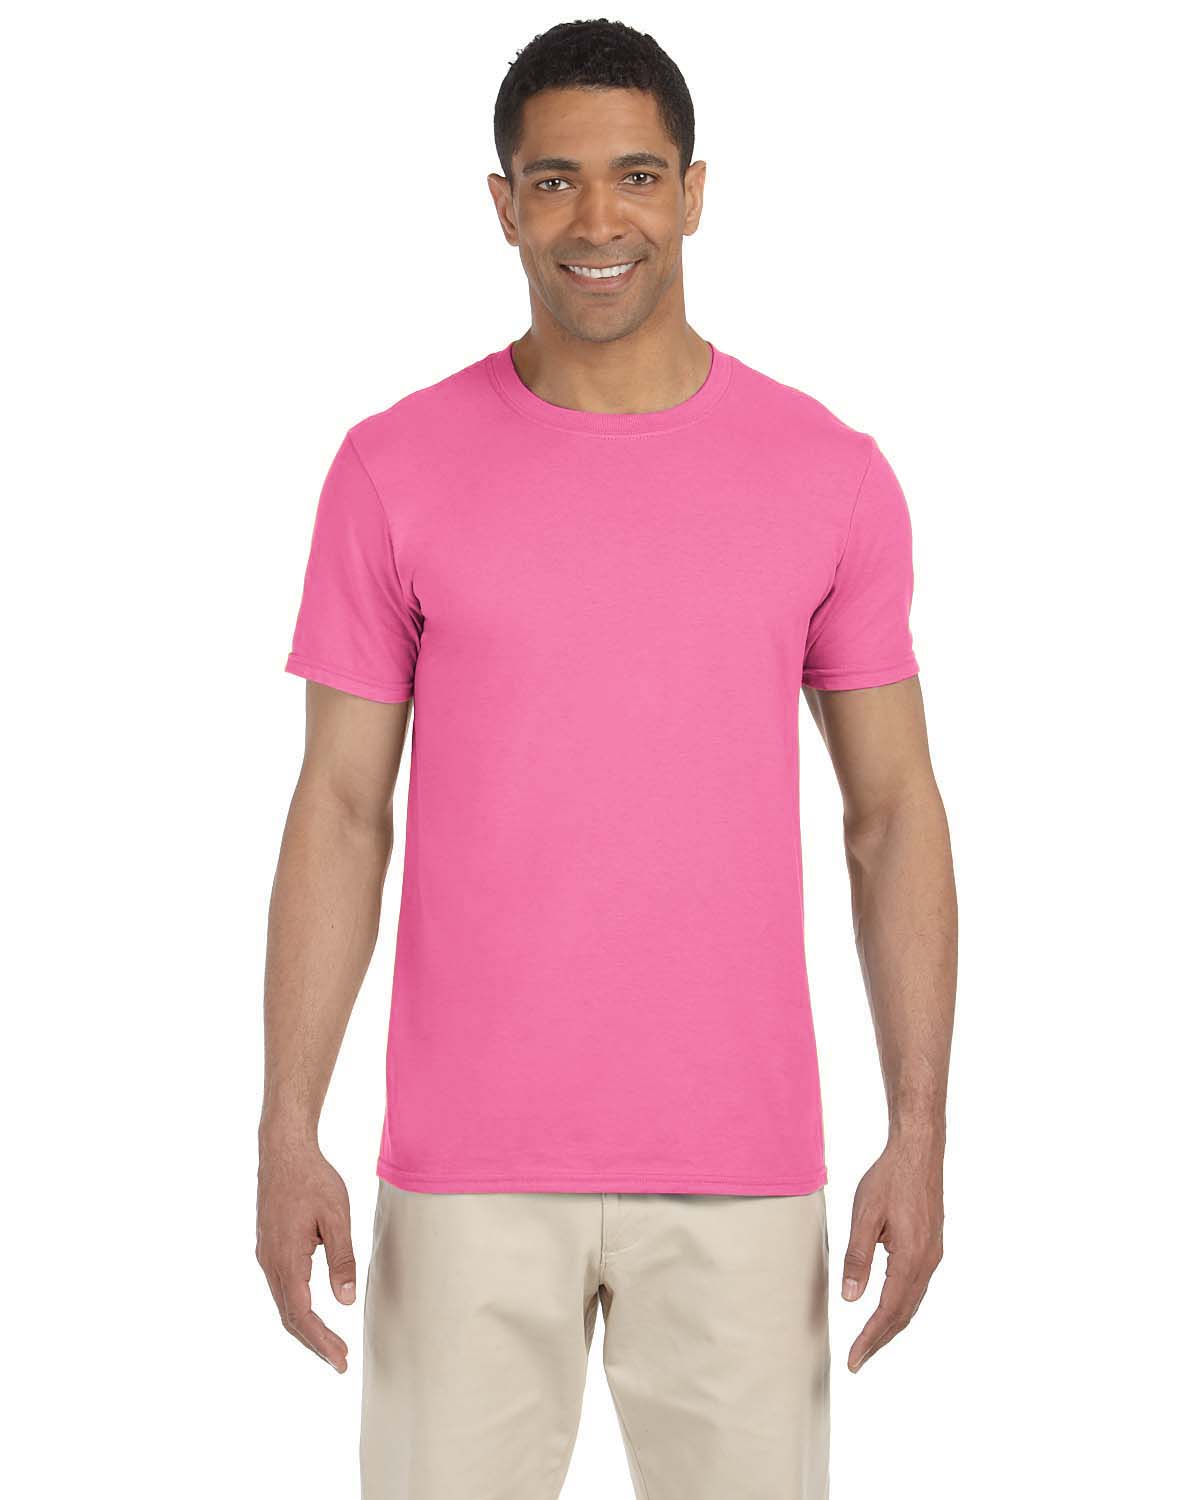 g640-adult-softstyle-t-shirt-s-xl-fashion-colors-Small-AZALEA-Oasispromos